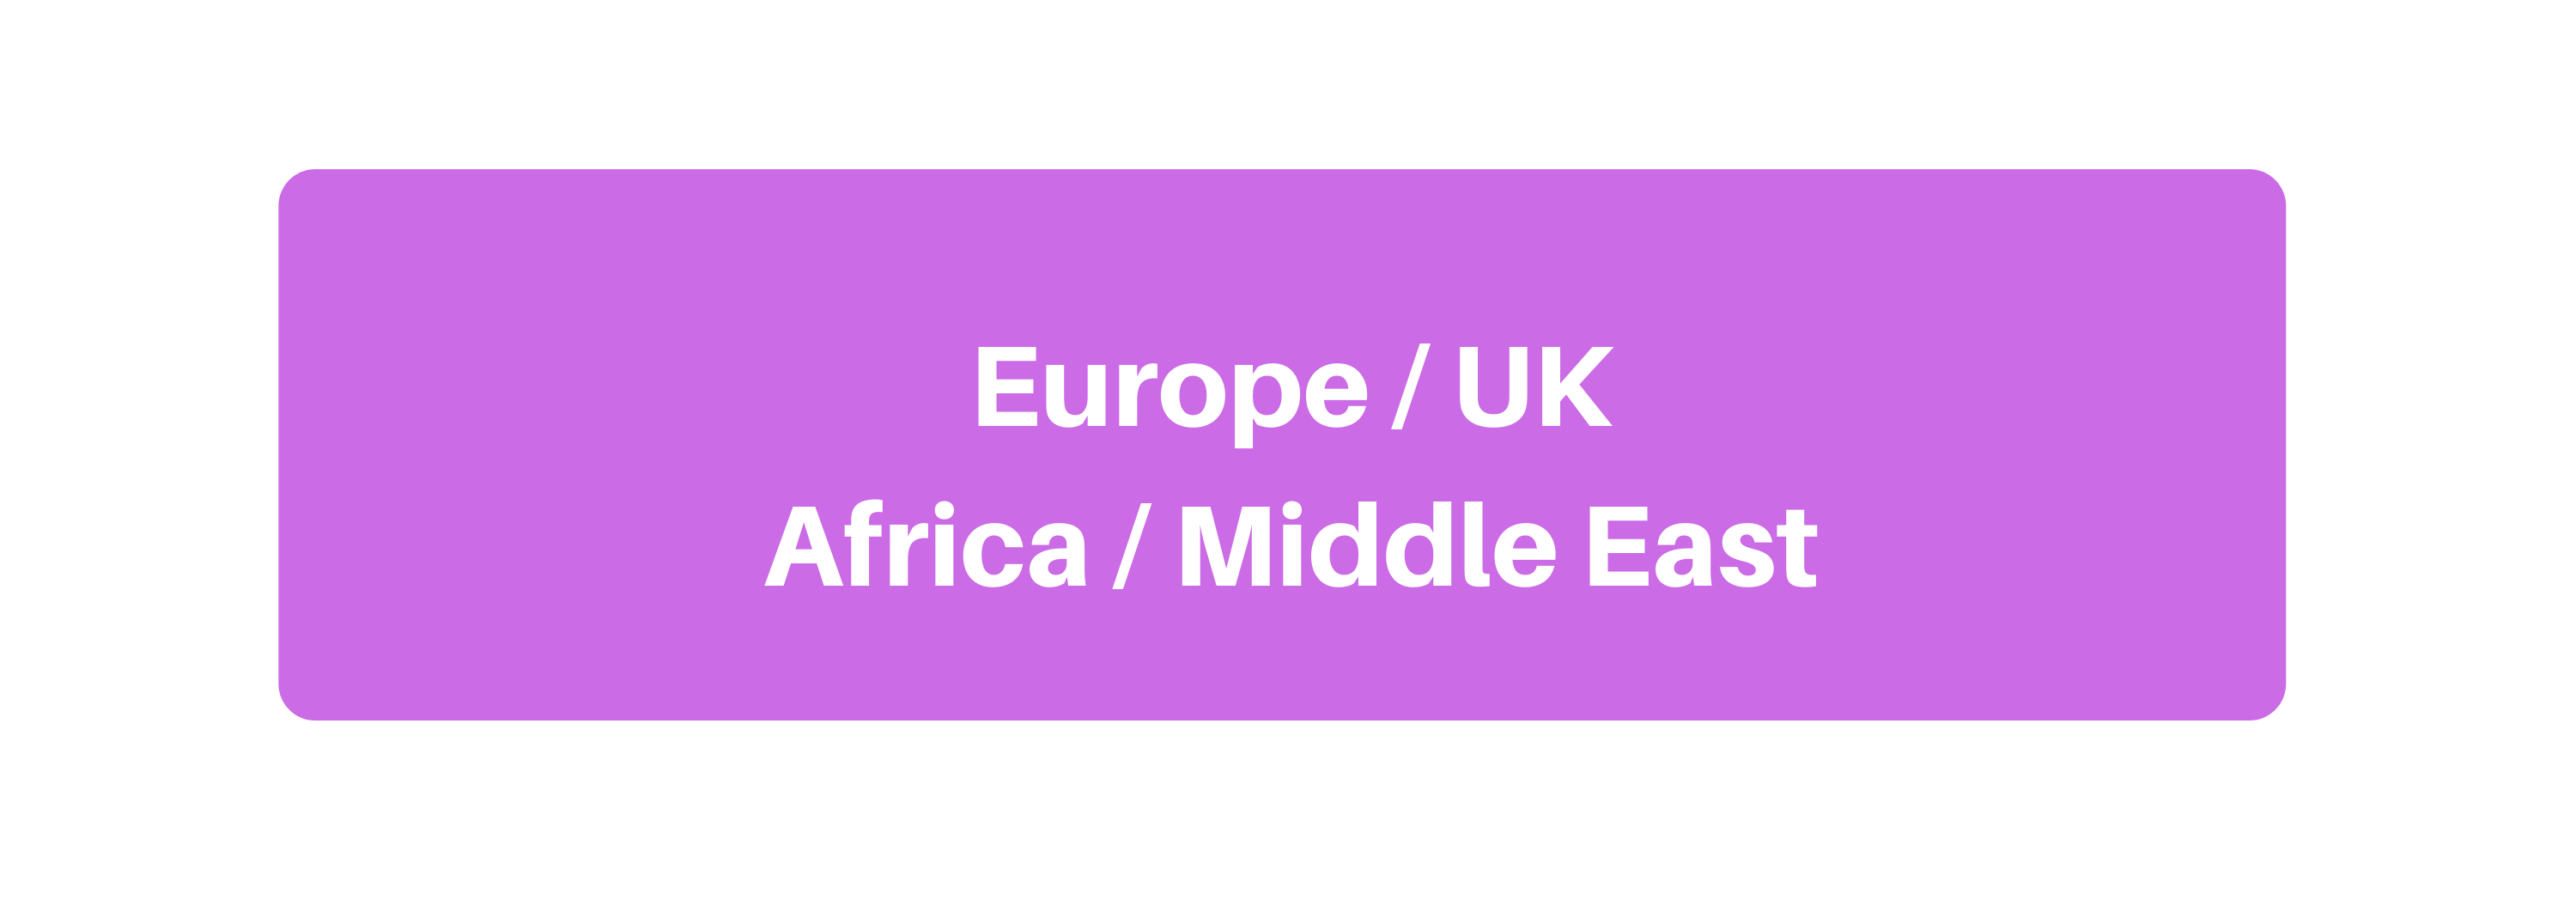 Register for webinar for Europe, UK, Africa, and Middle East